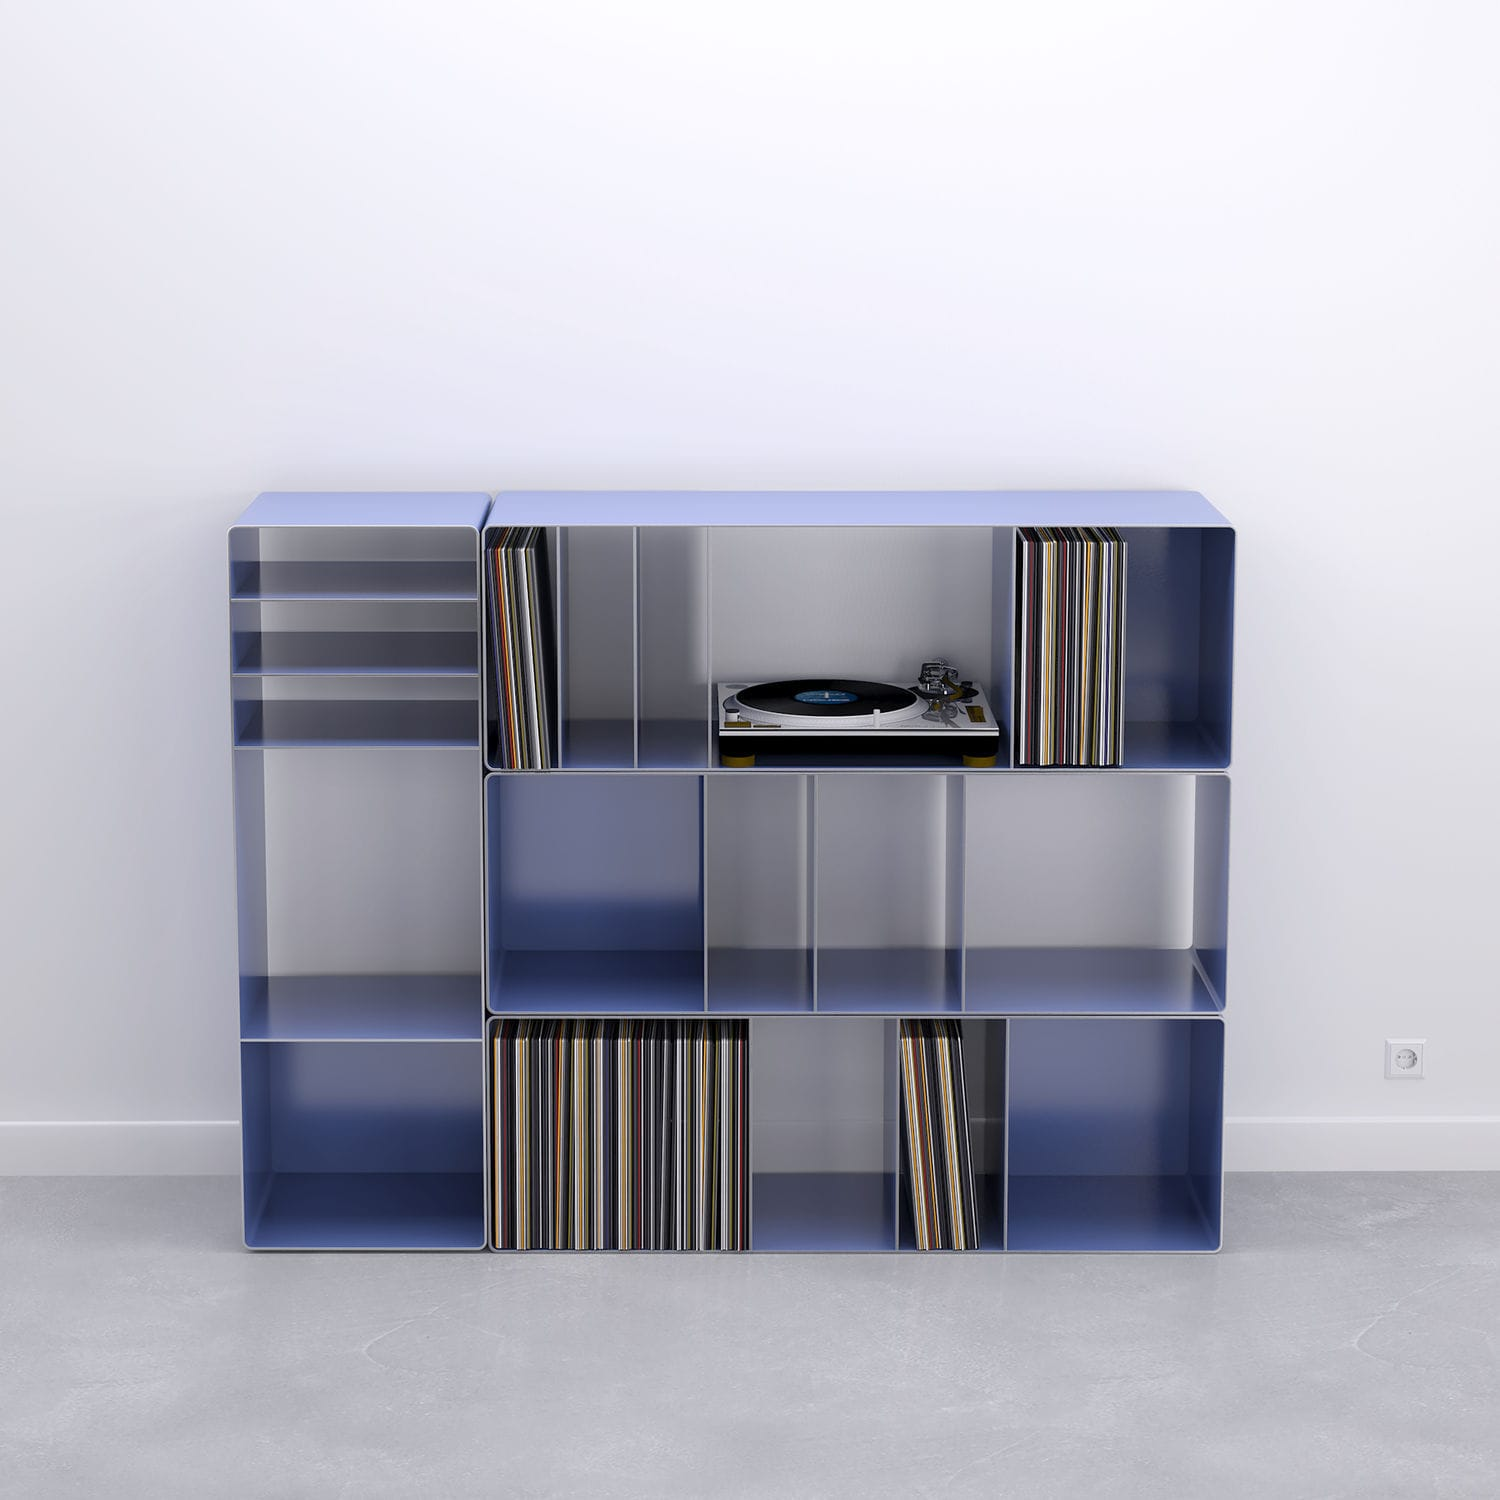 world com paperboard amazon s made shelf vinyl storage from lp record dp axl basics guaranteed tool free assembly espresso stackable sustainable easiest way album cube and